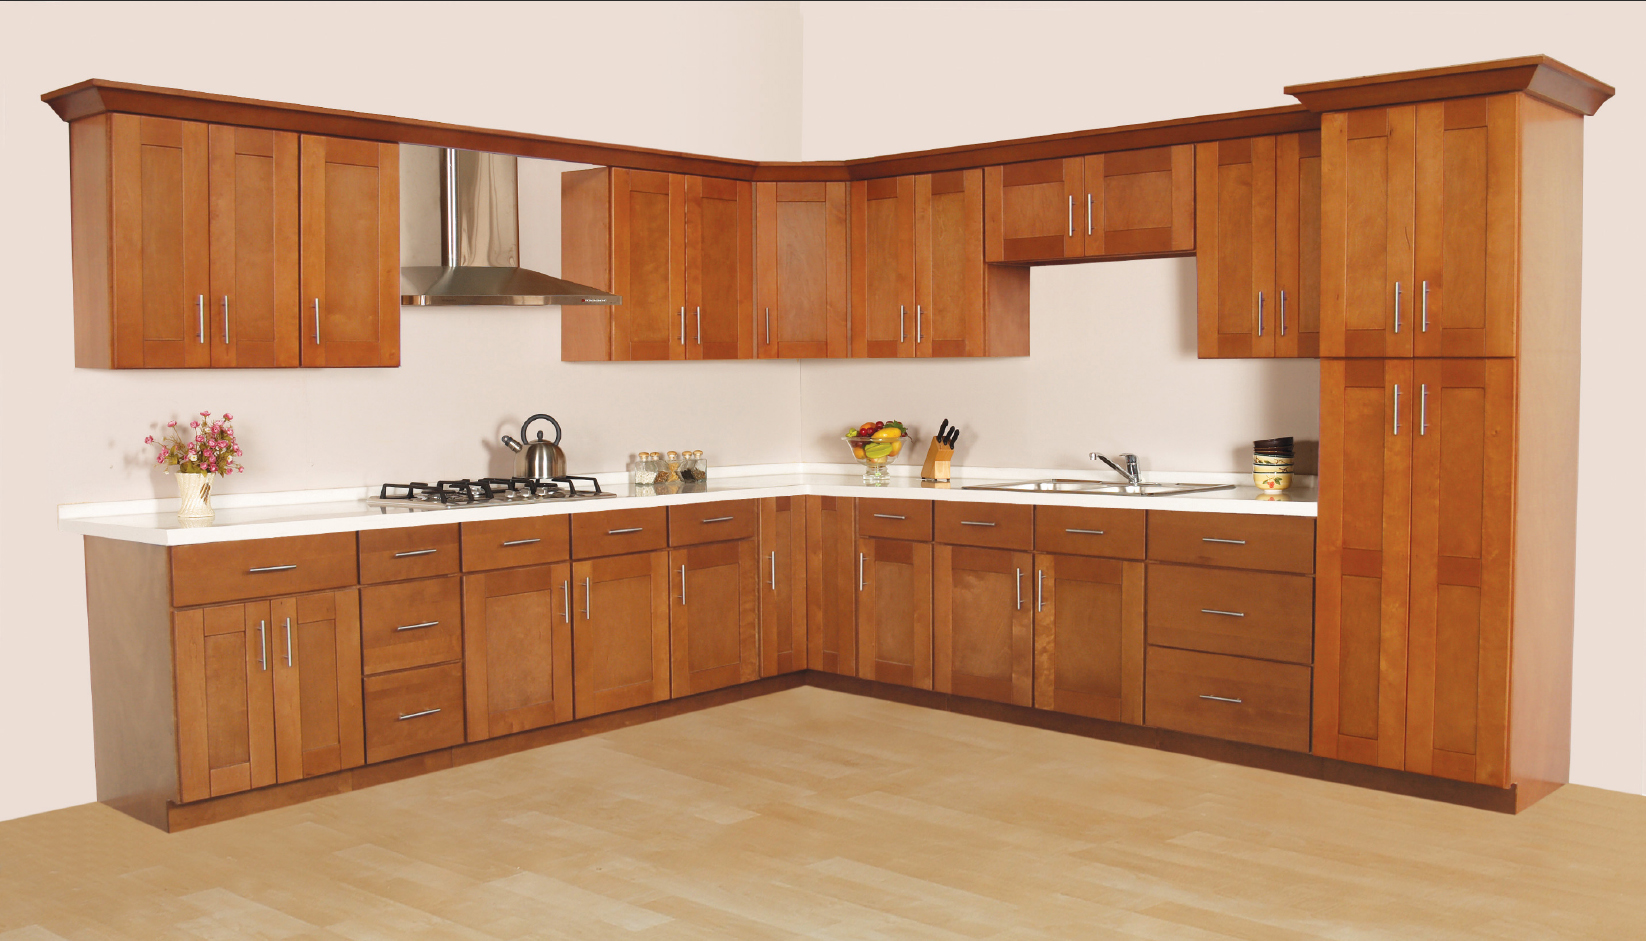 menards kitchen cabinets. Gallery of Menards Kitchen Cabinet  Price and Details Home Reviews